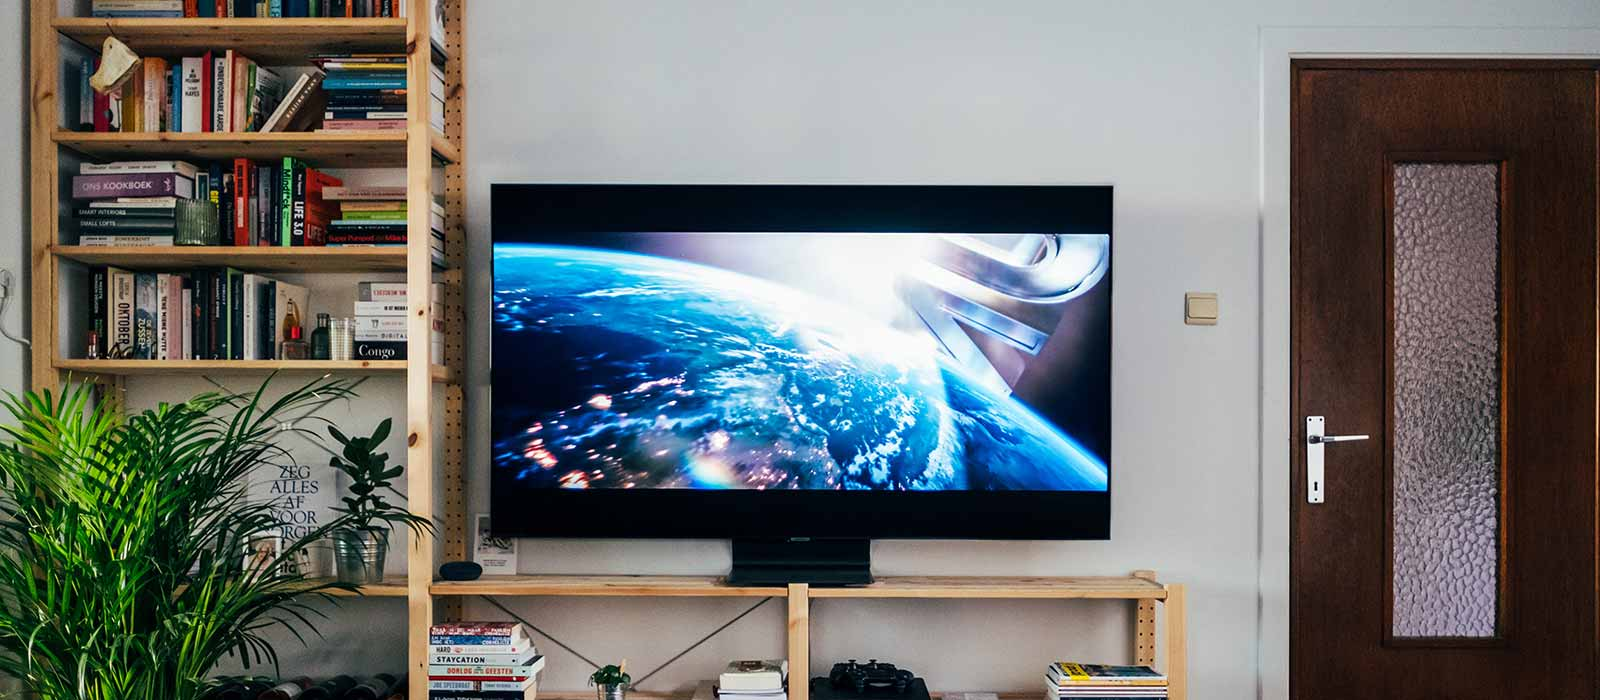 Smart TV in an apartment